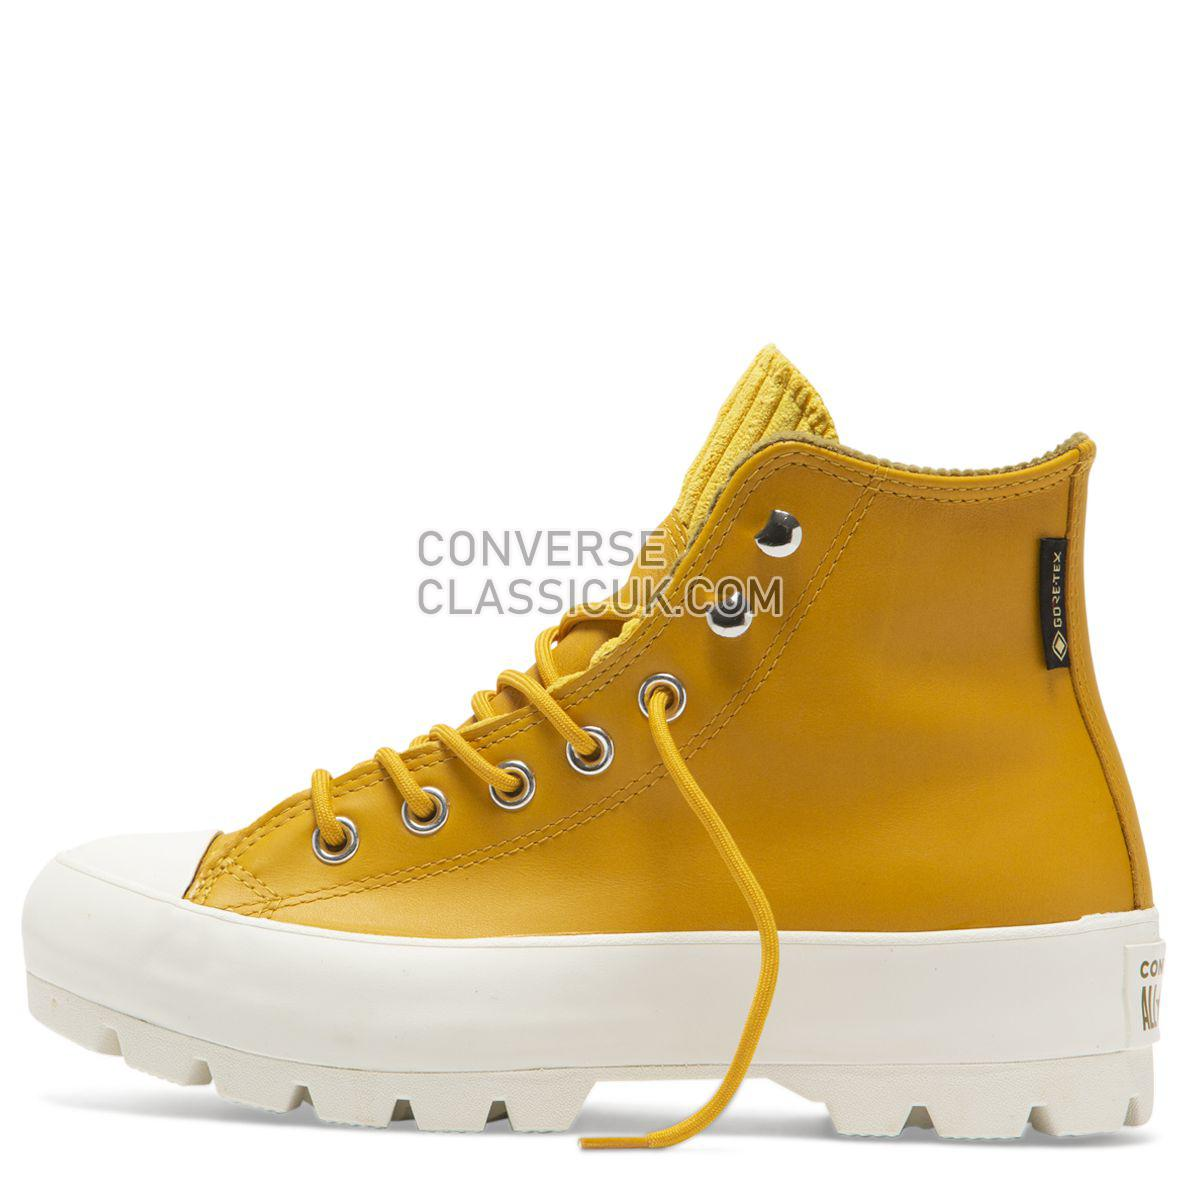 Converse Chuck Taylor All Star Lugged Winter Retrograde High Top Gold Dart Womens 565005 Gold Dart/Olive Flak/Egret Shoes